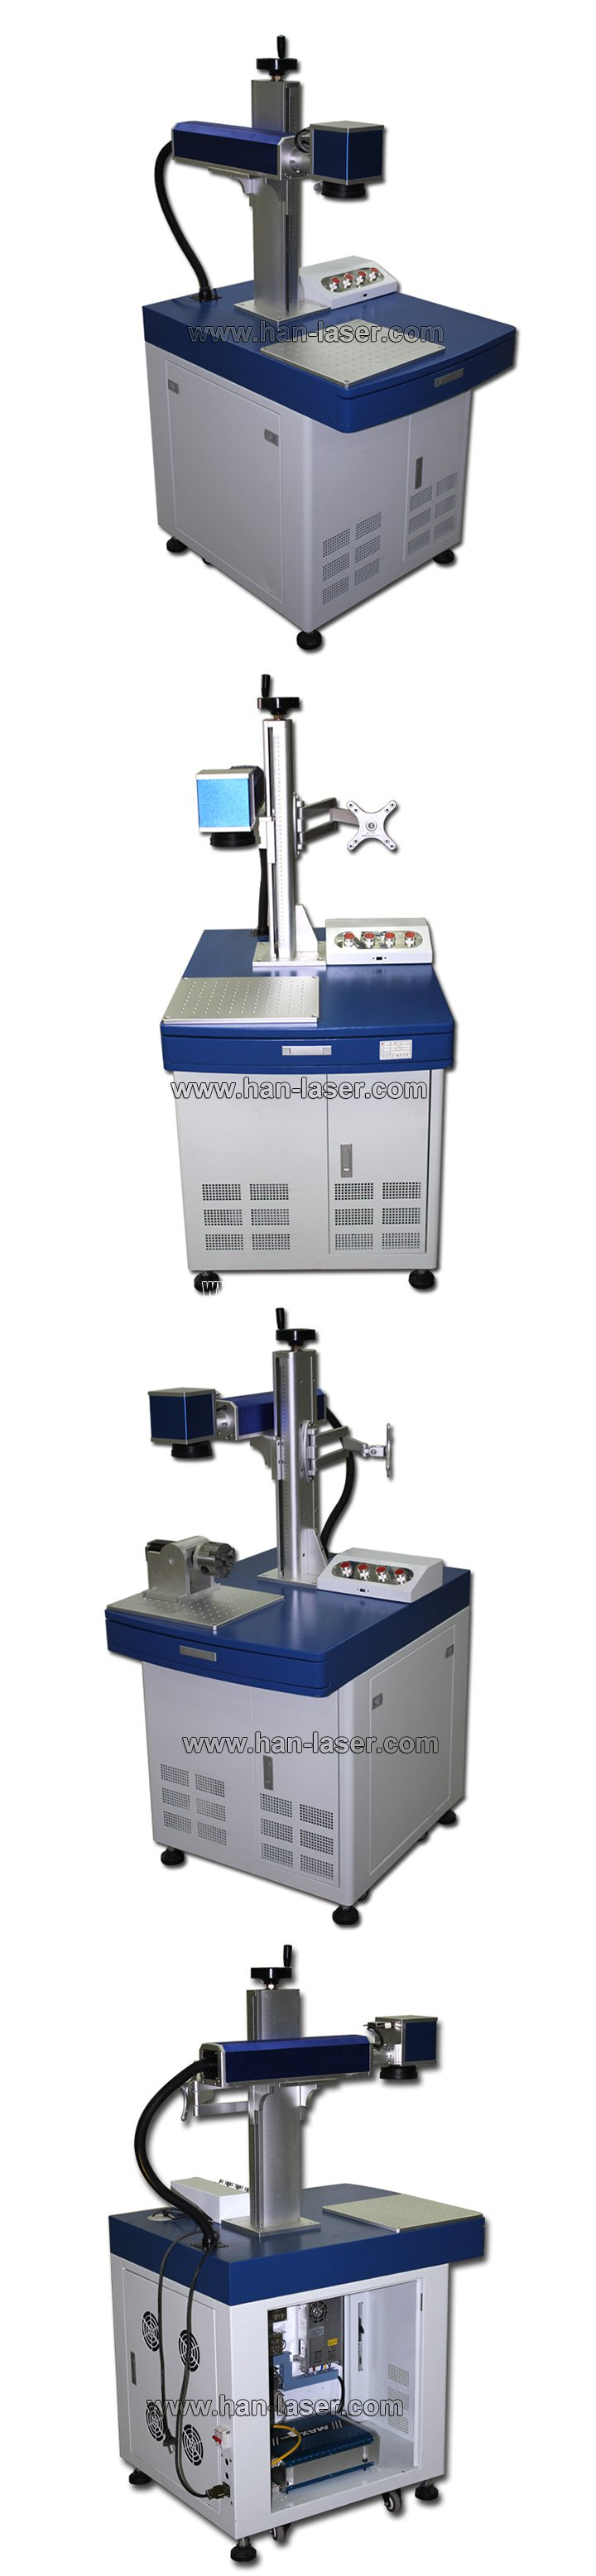 laser marker machine